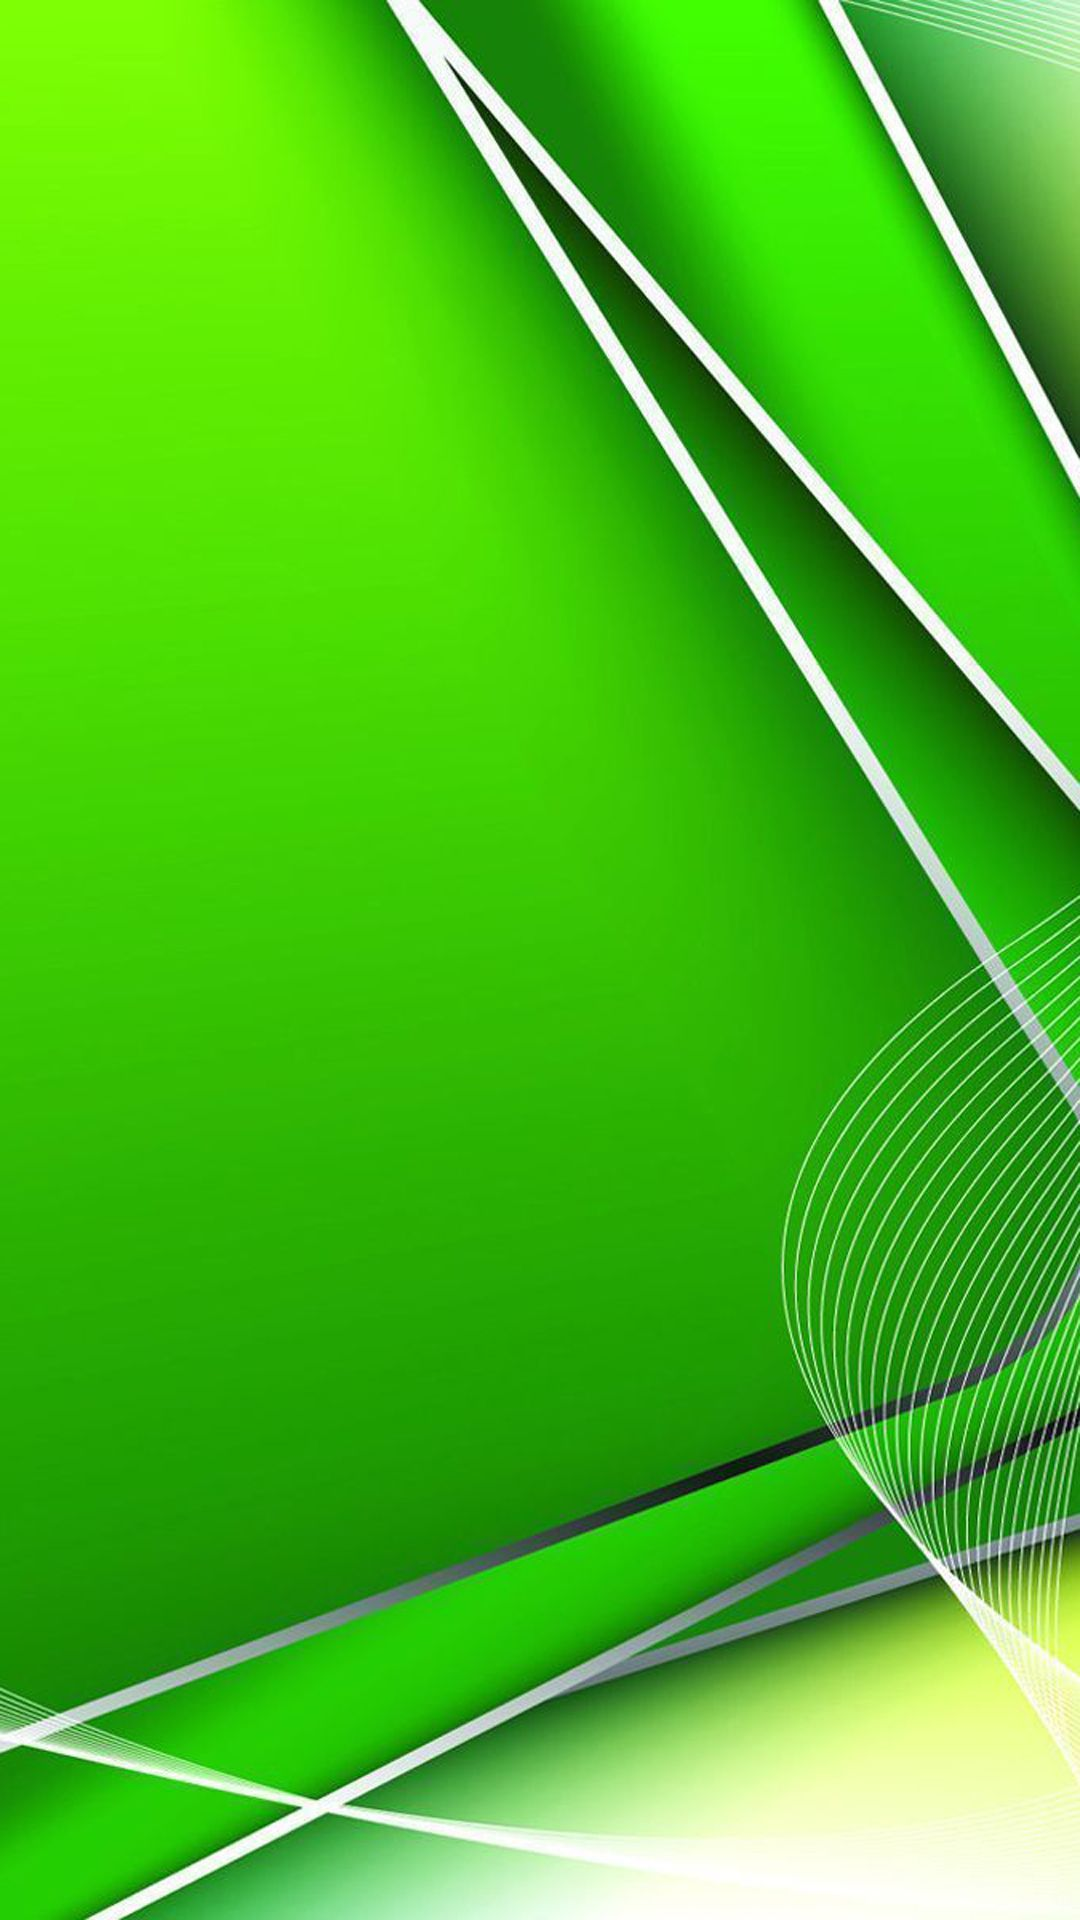 green.quenalbertini: glowing curves samsung hd wallpaper | 101 green